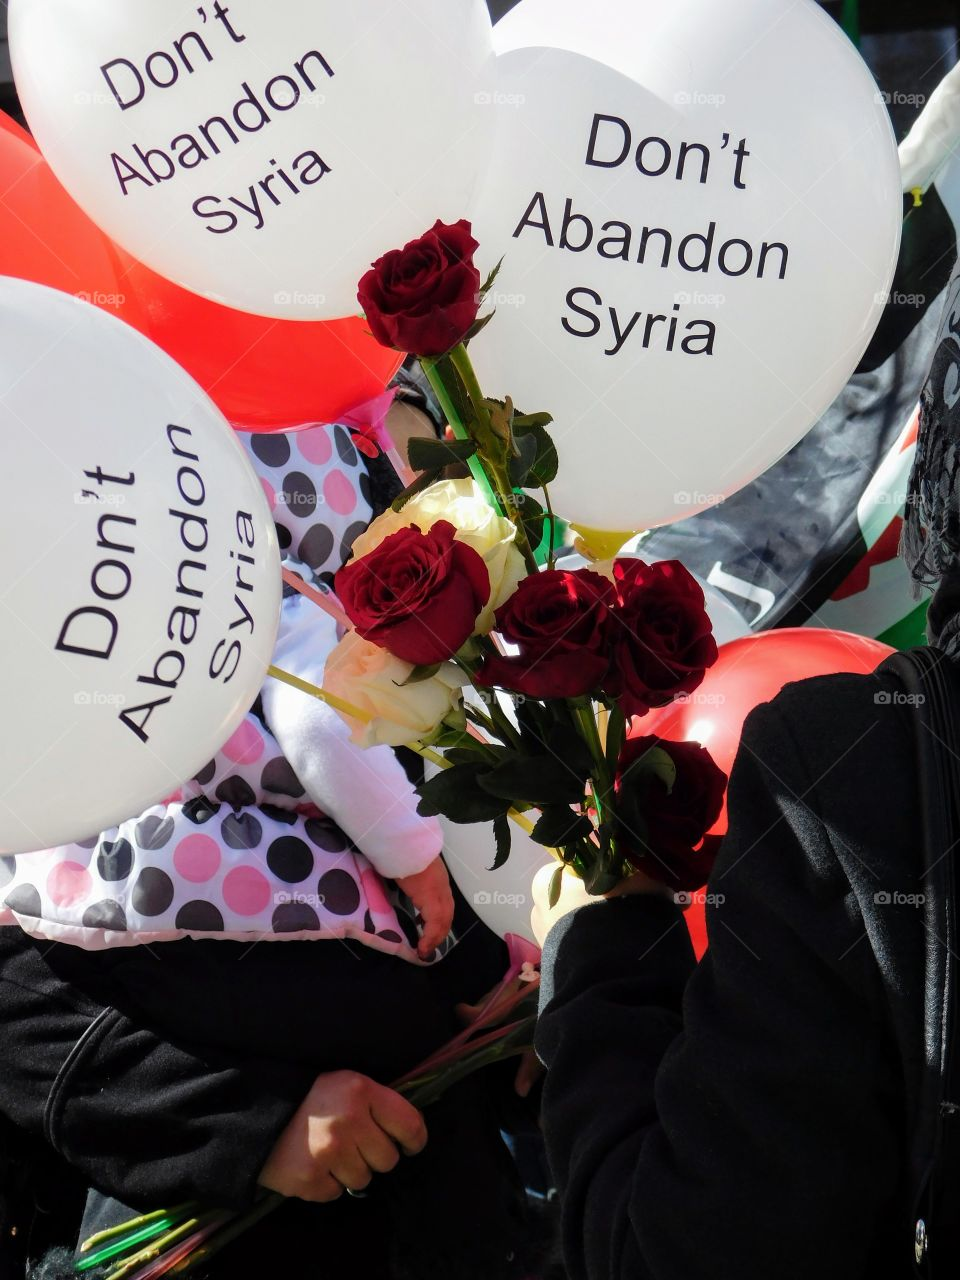 Don't abandon Syria